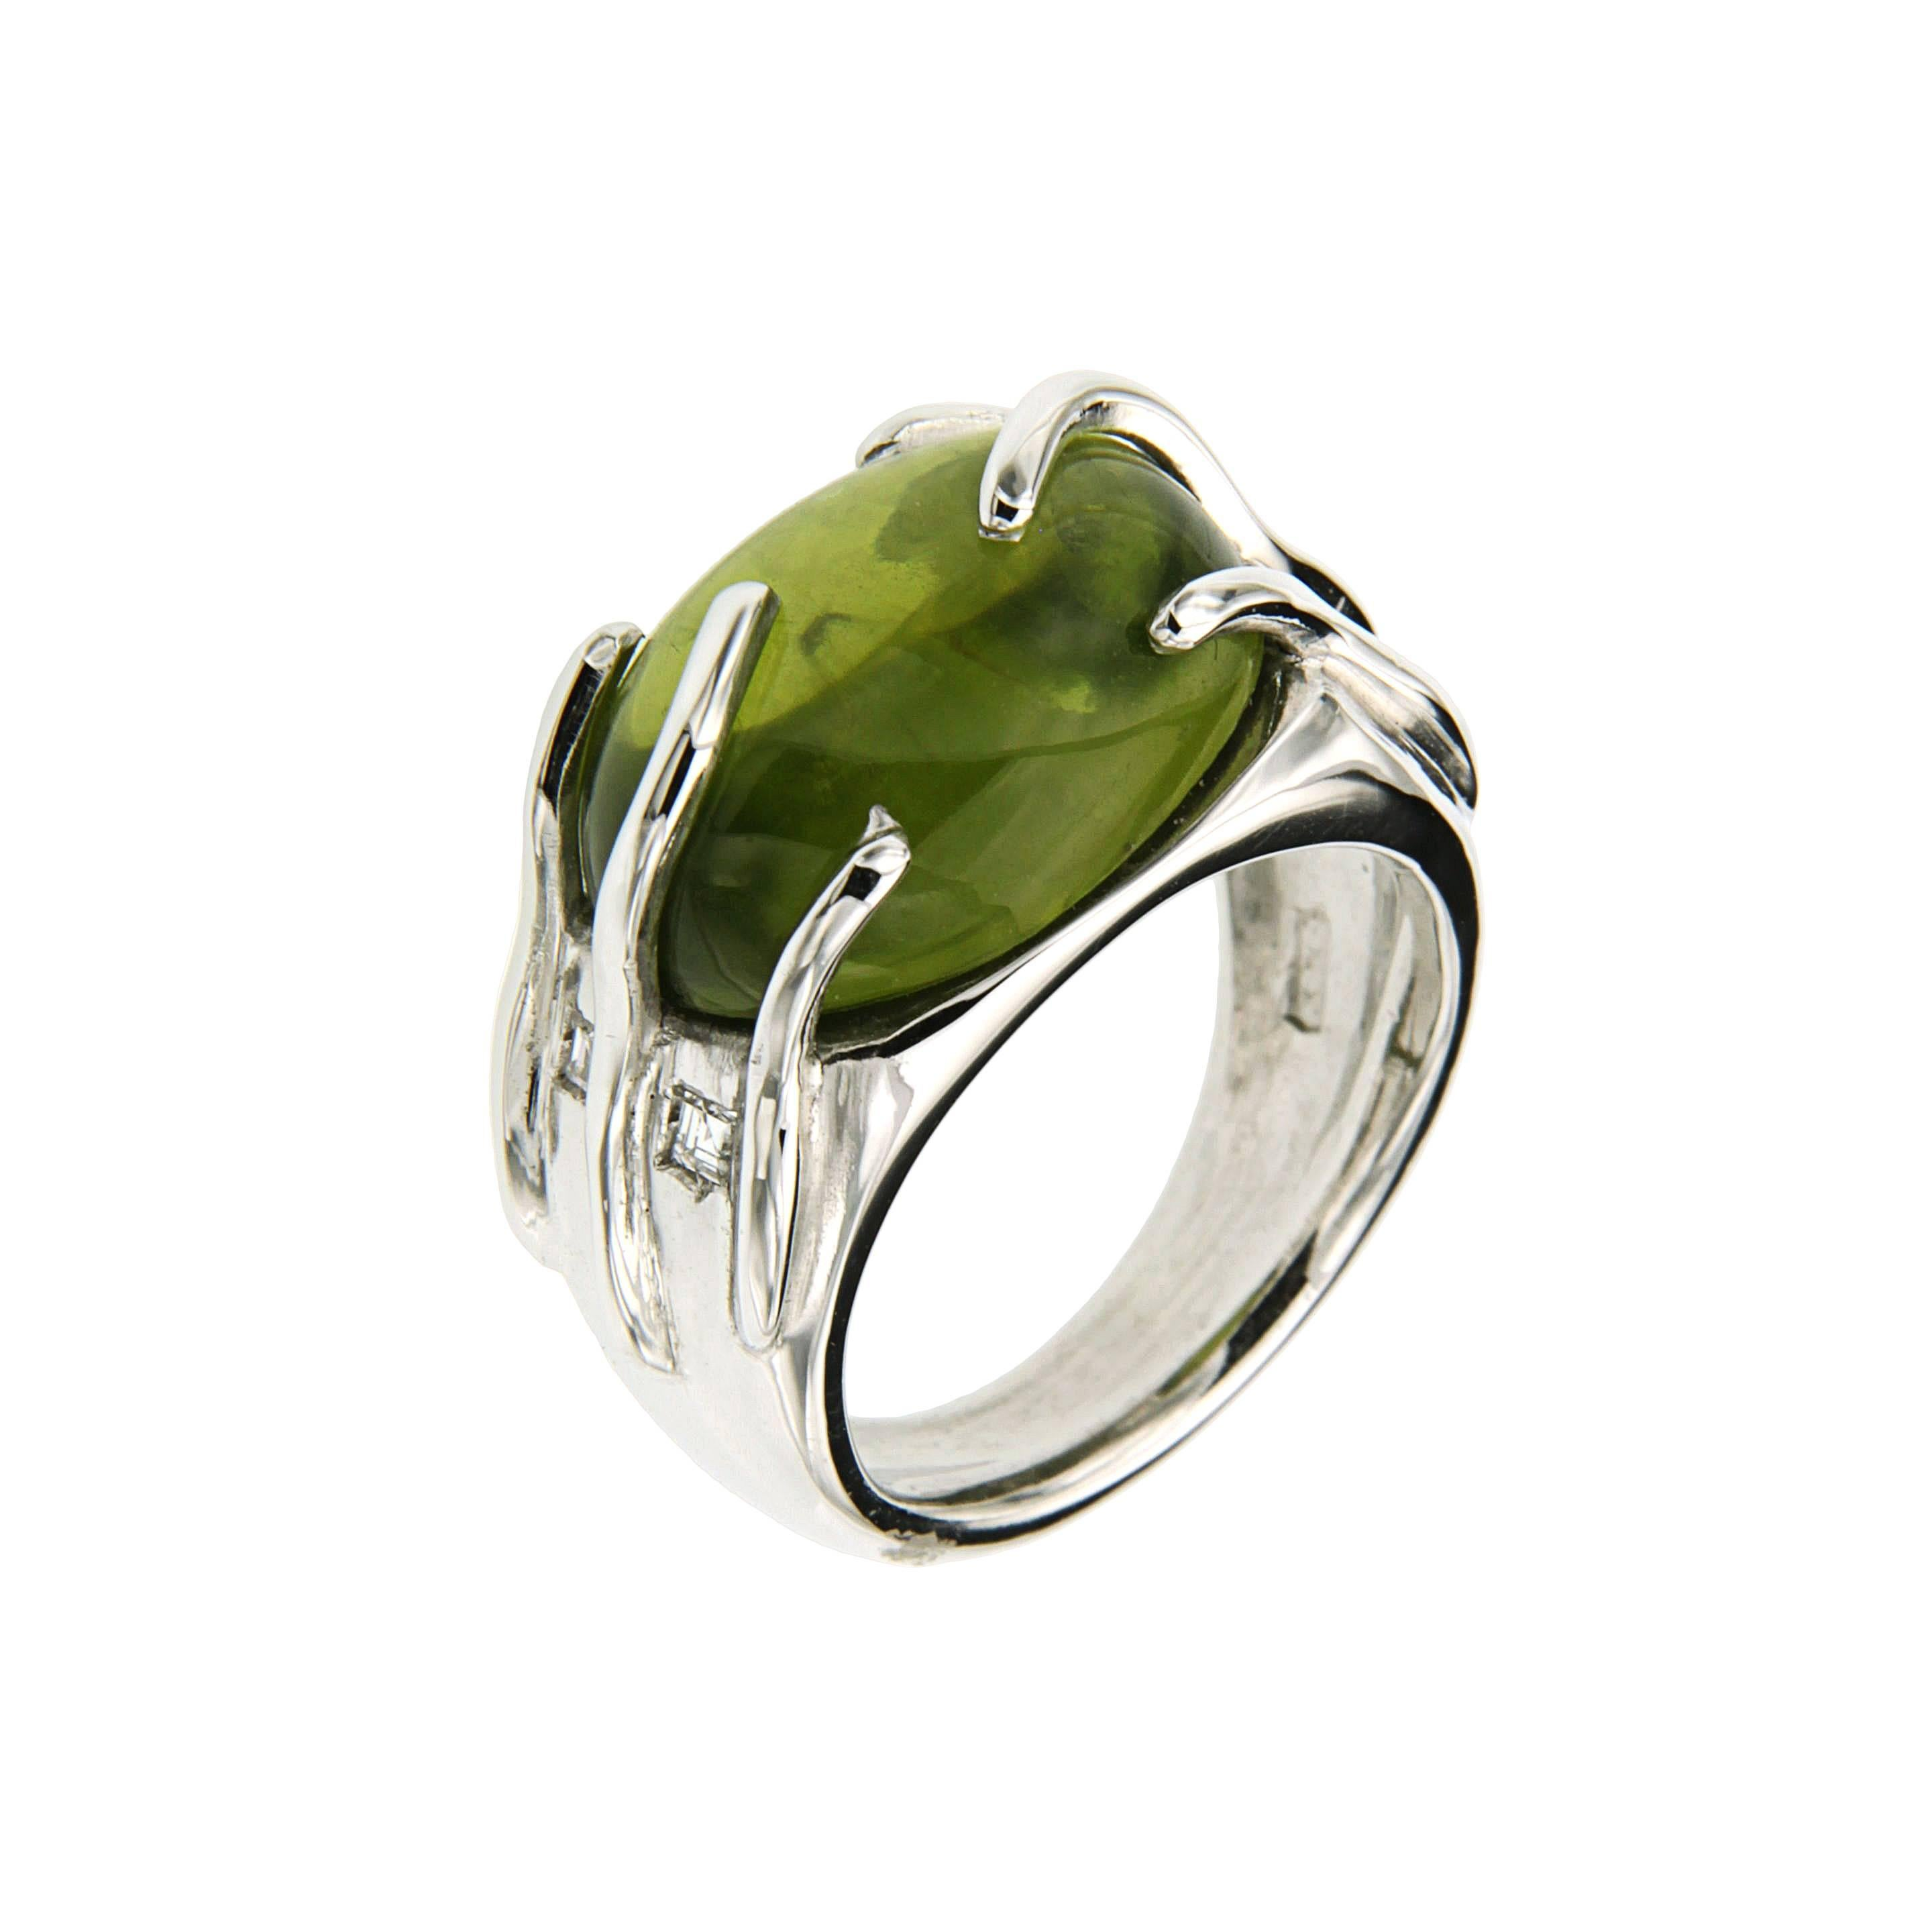 Green Peridot Diamonds White Gold Cocktail Ring Handcrafted in Italy